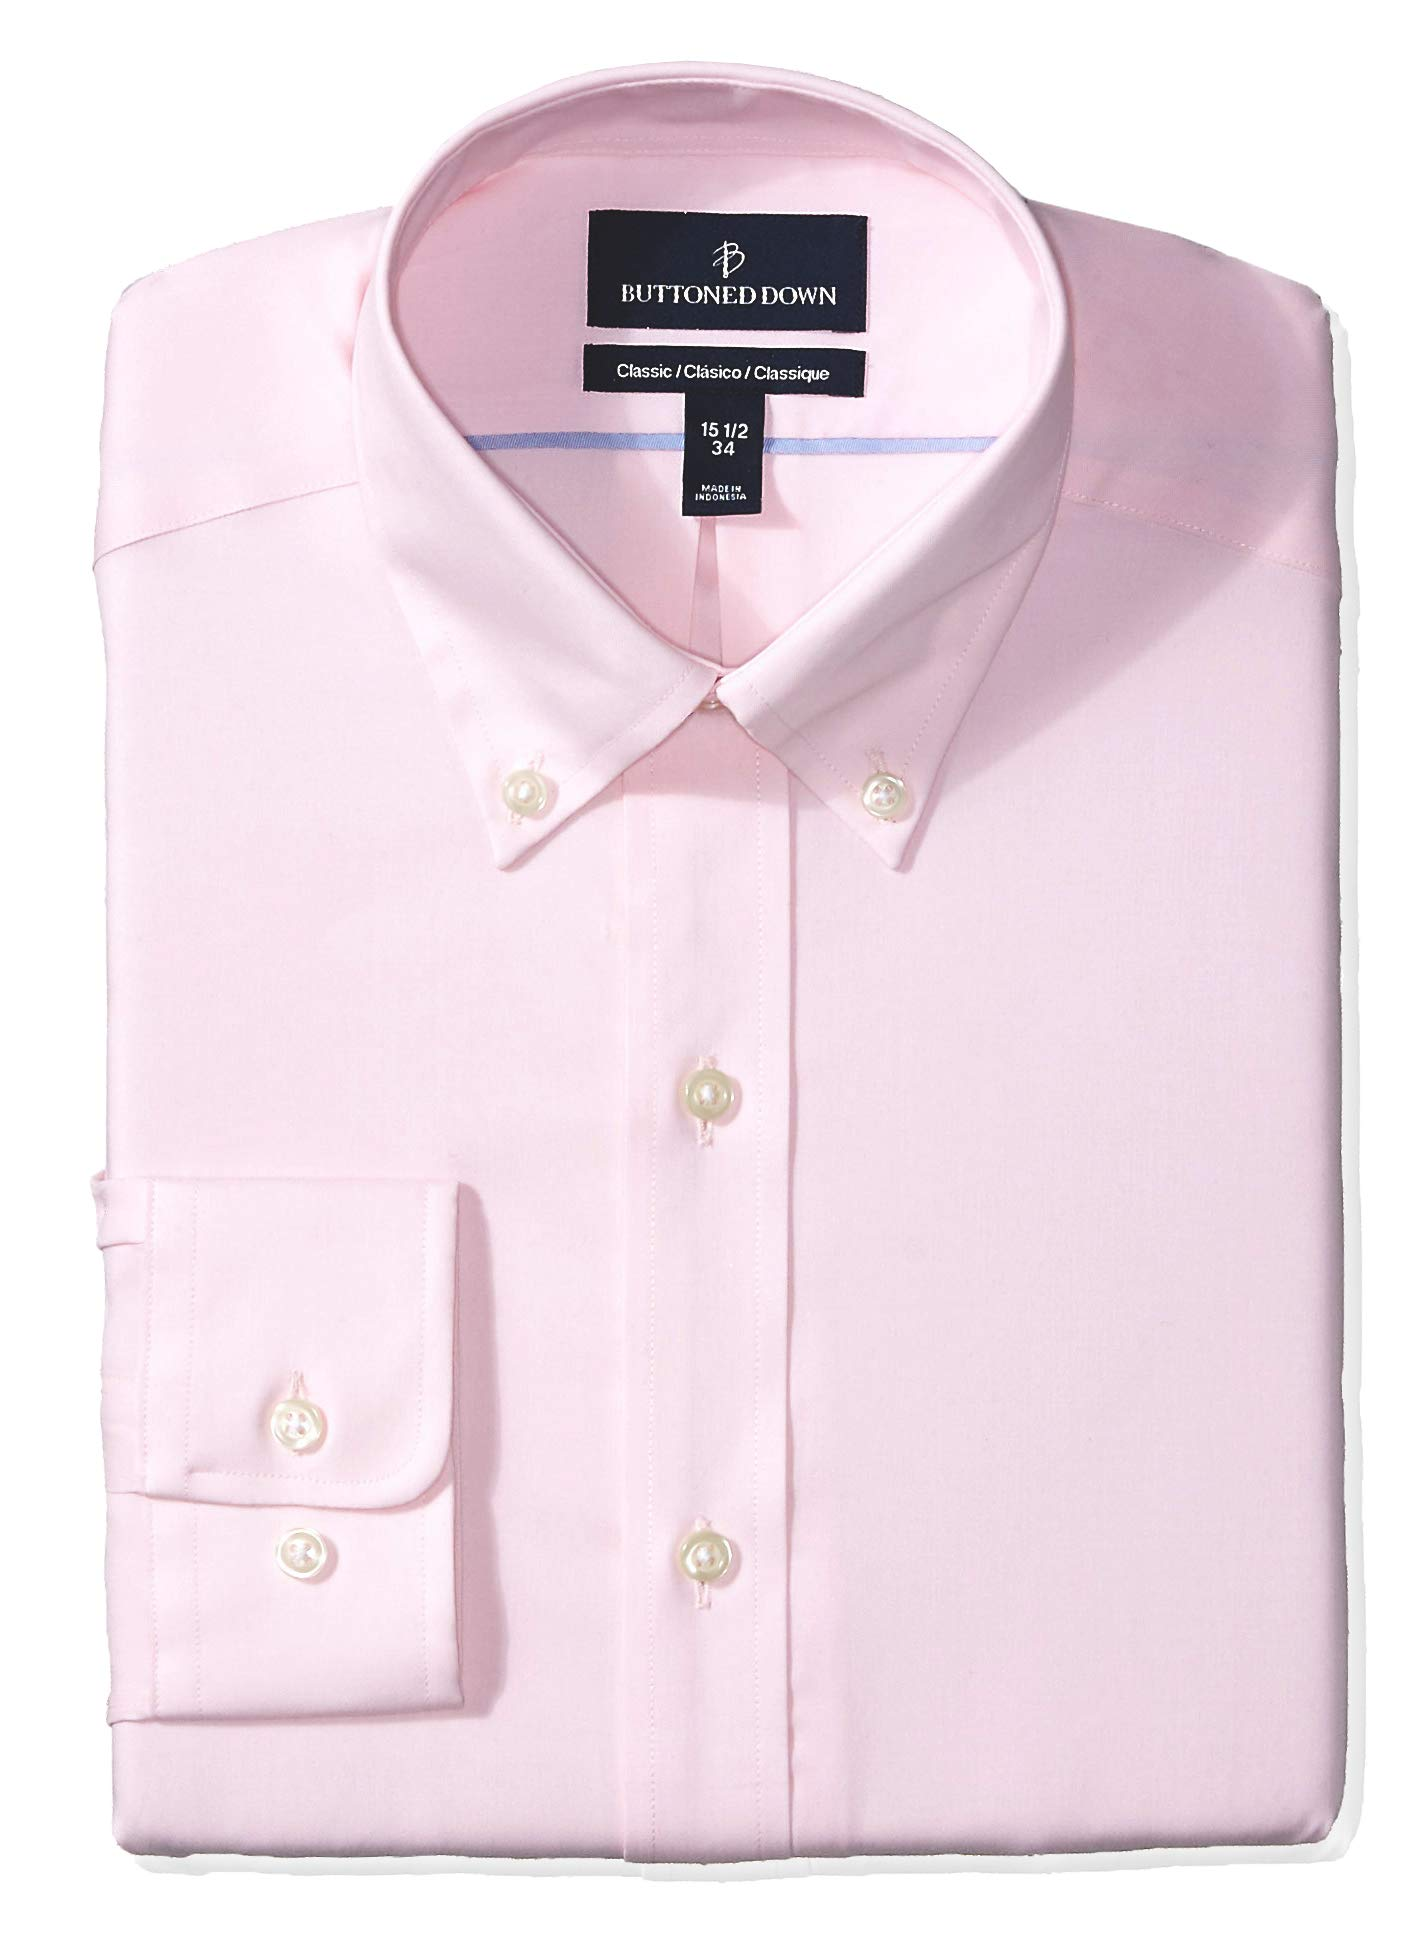 Amazon Brand – BUTTONED DOWN Men's Classic Fit Button-Collar Solid Pinpoint Dress Shirt, Supima Cotton Non-Iron